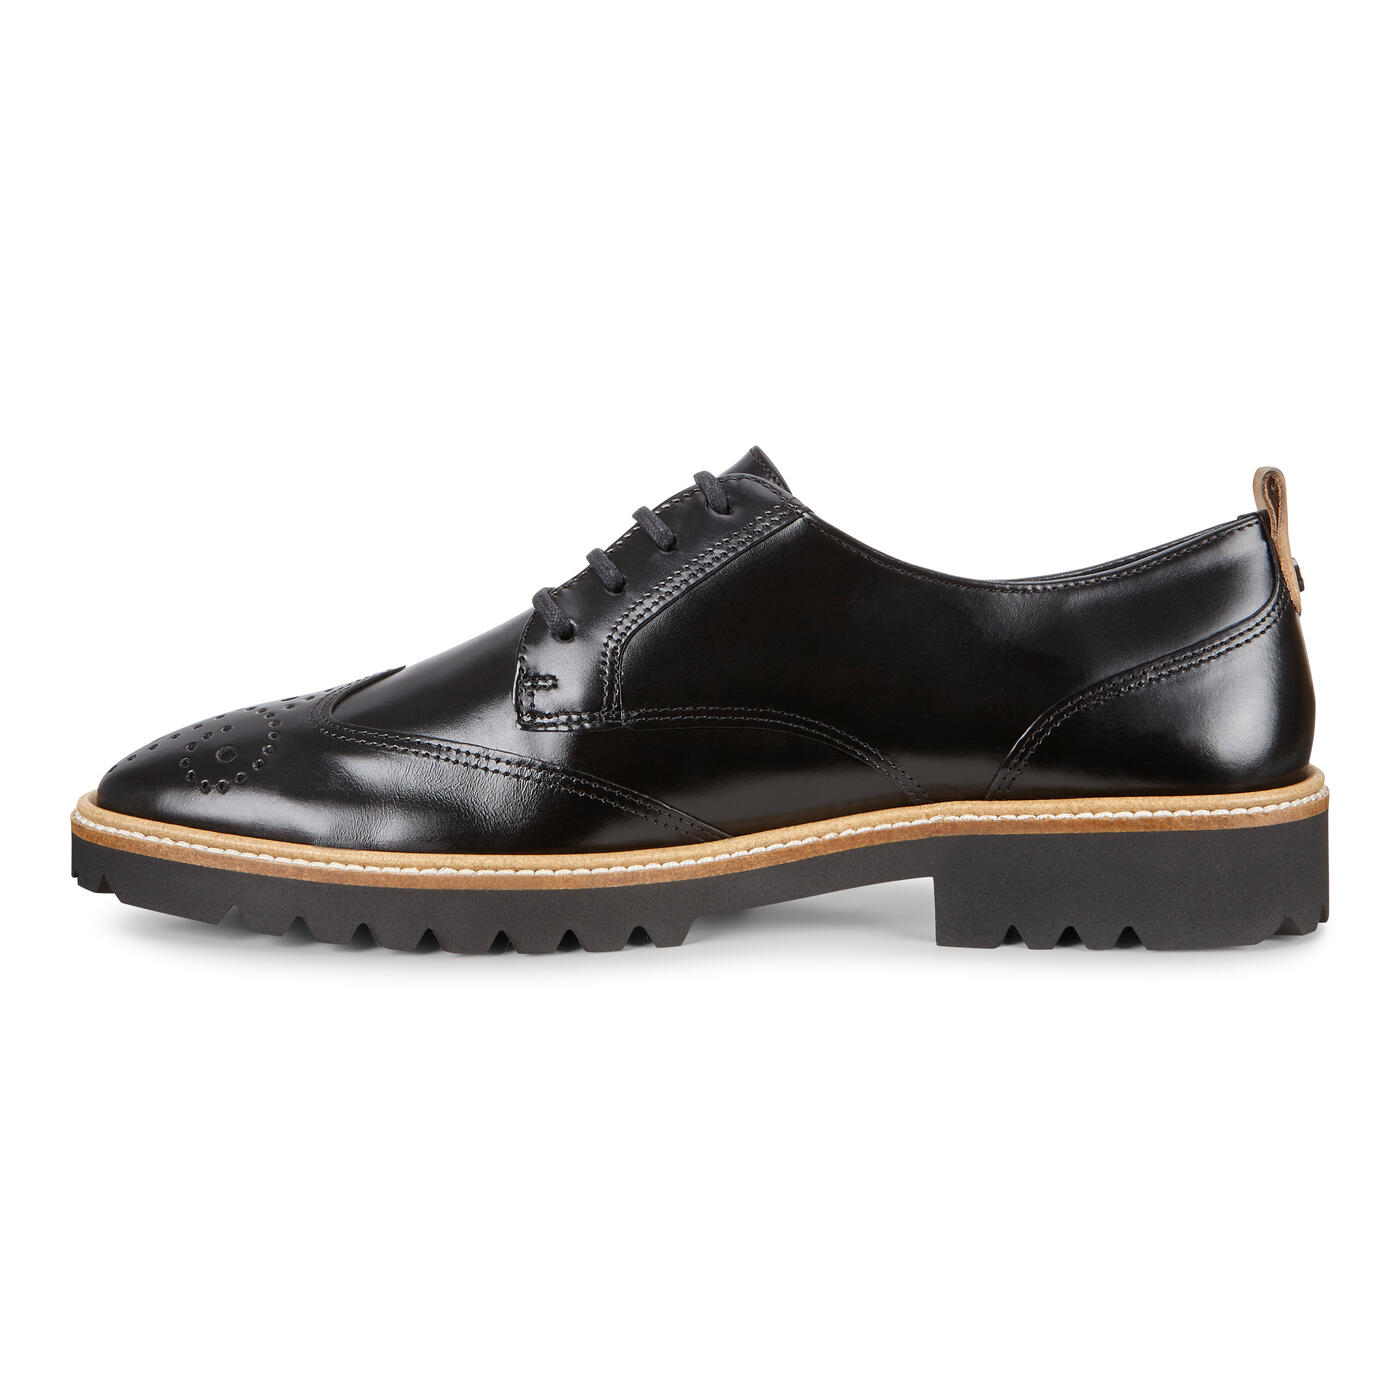 Chaussure ECCO INCISE TAILORED pour femmes